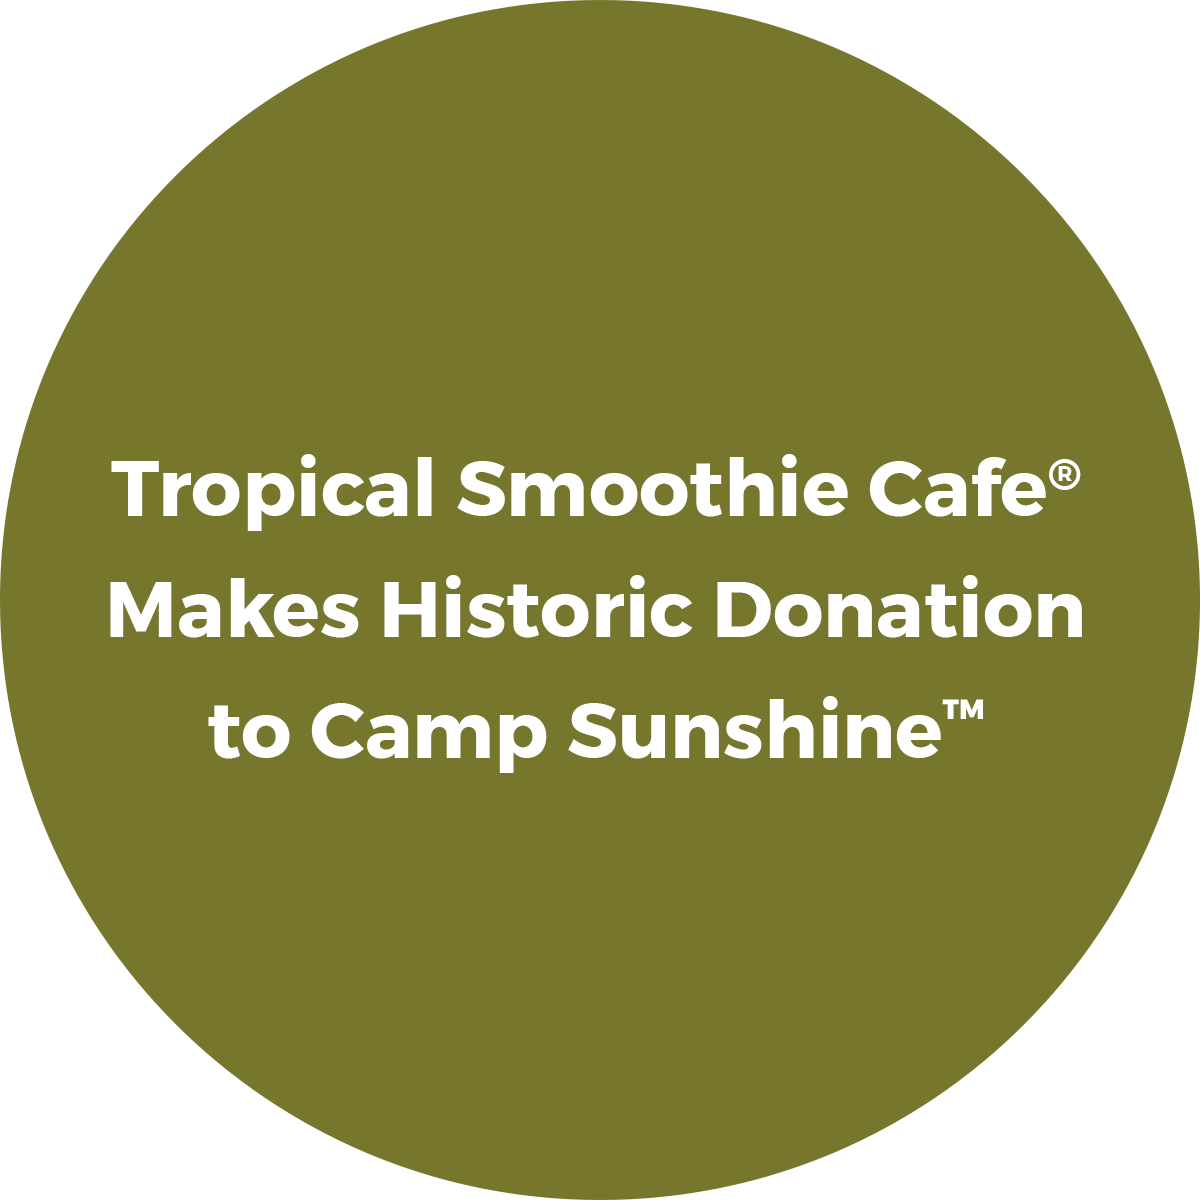 Tropical Smoothie Cafe Makes Historic Donation to Camp Sunshine